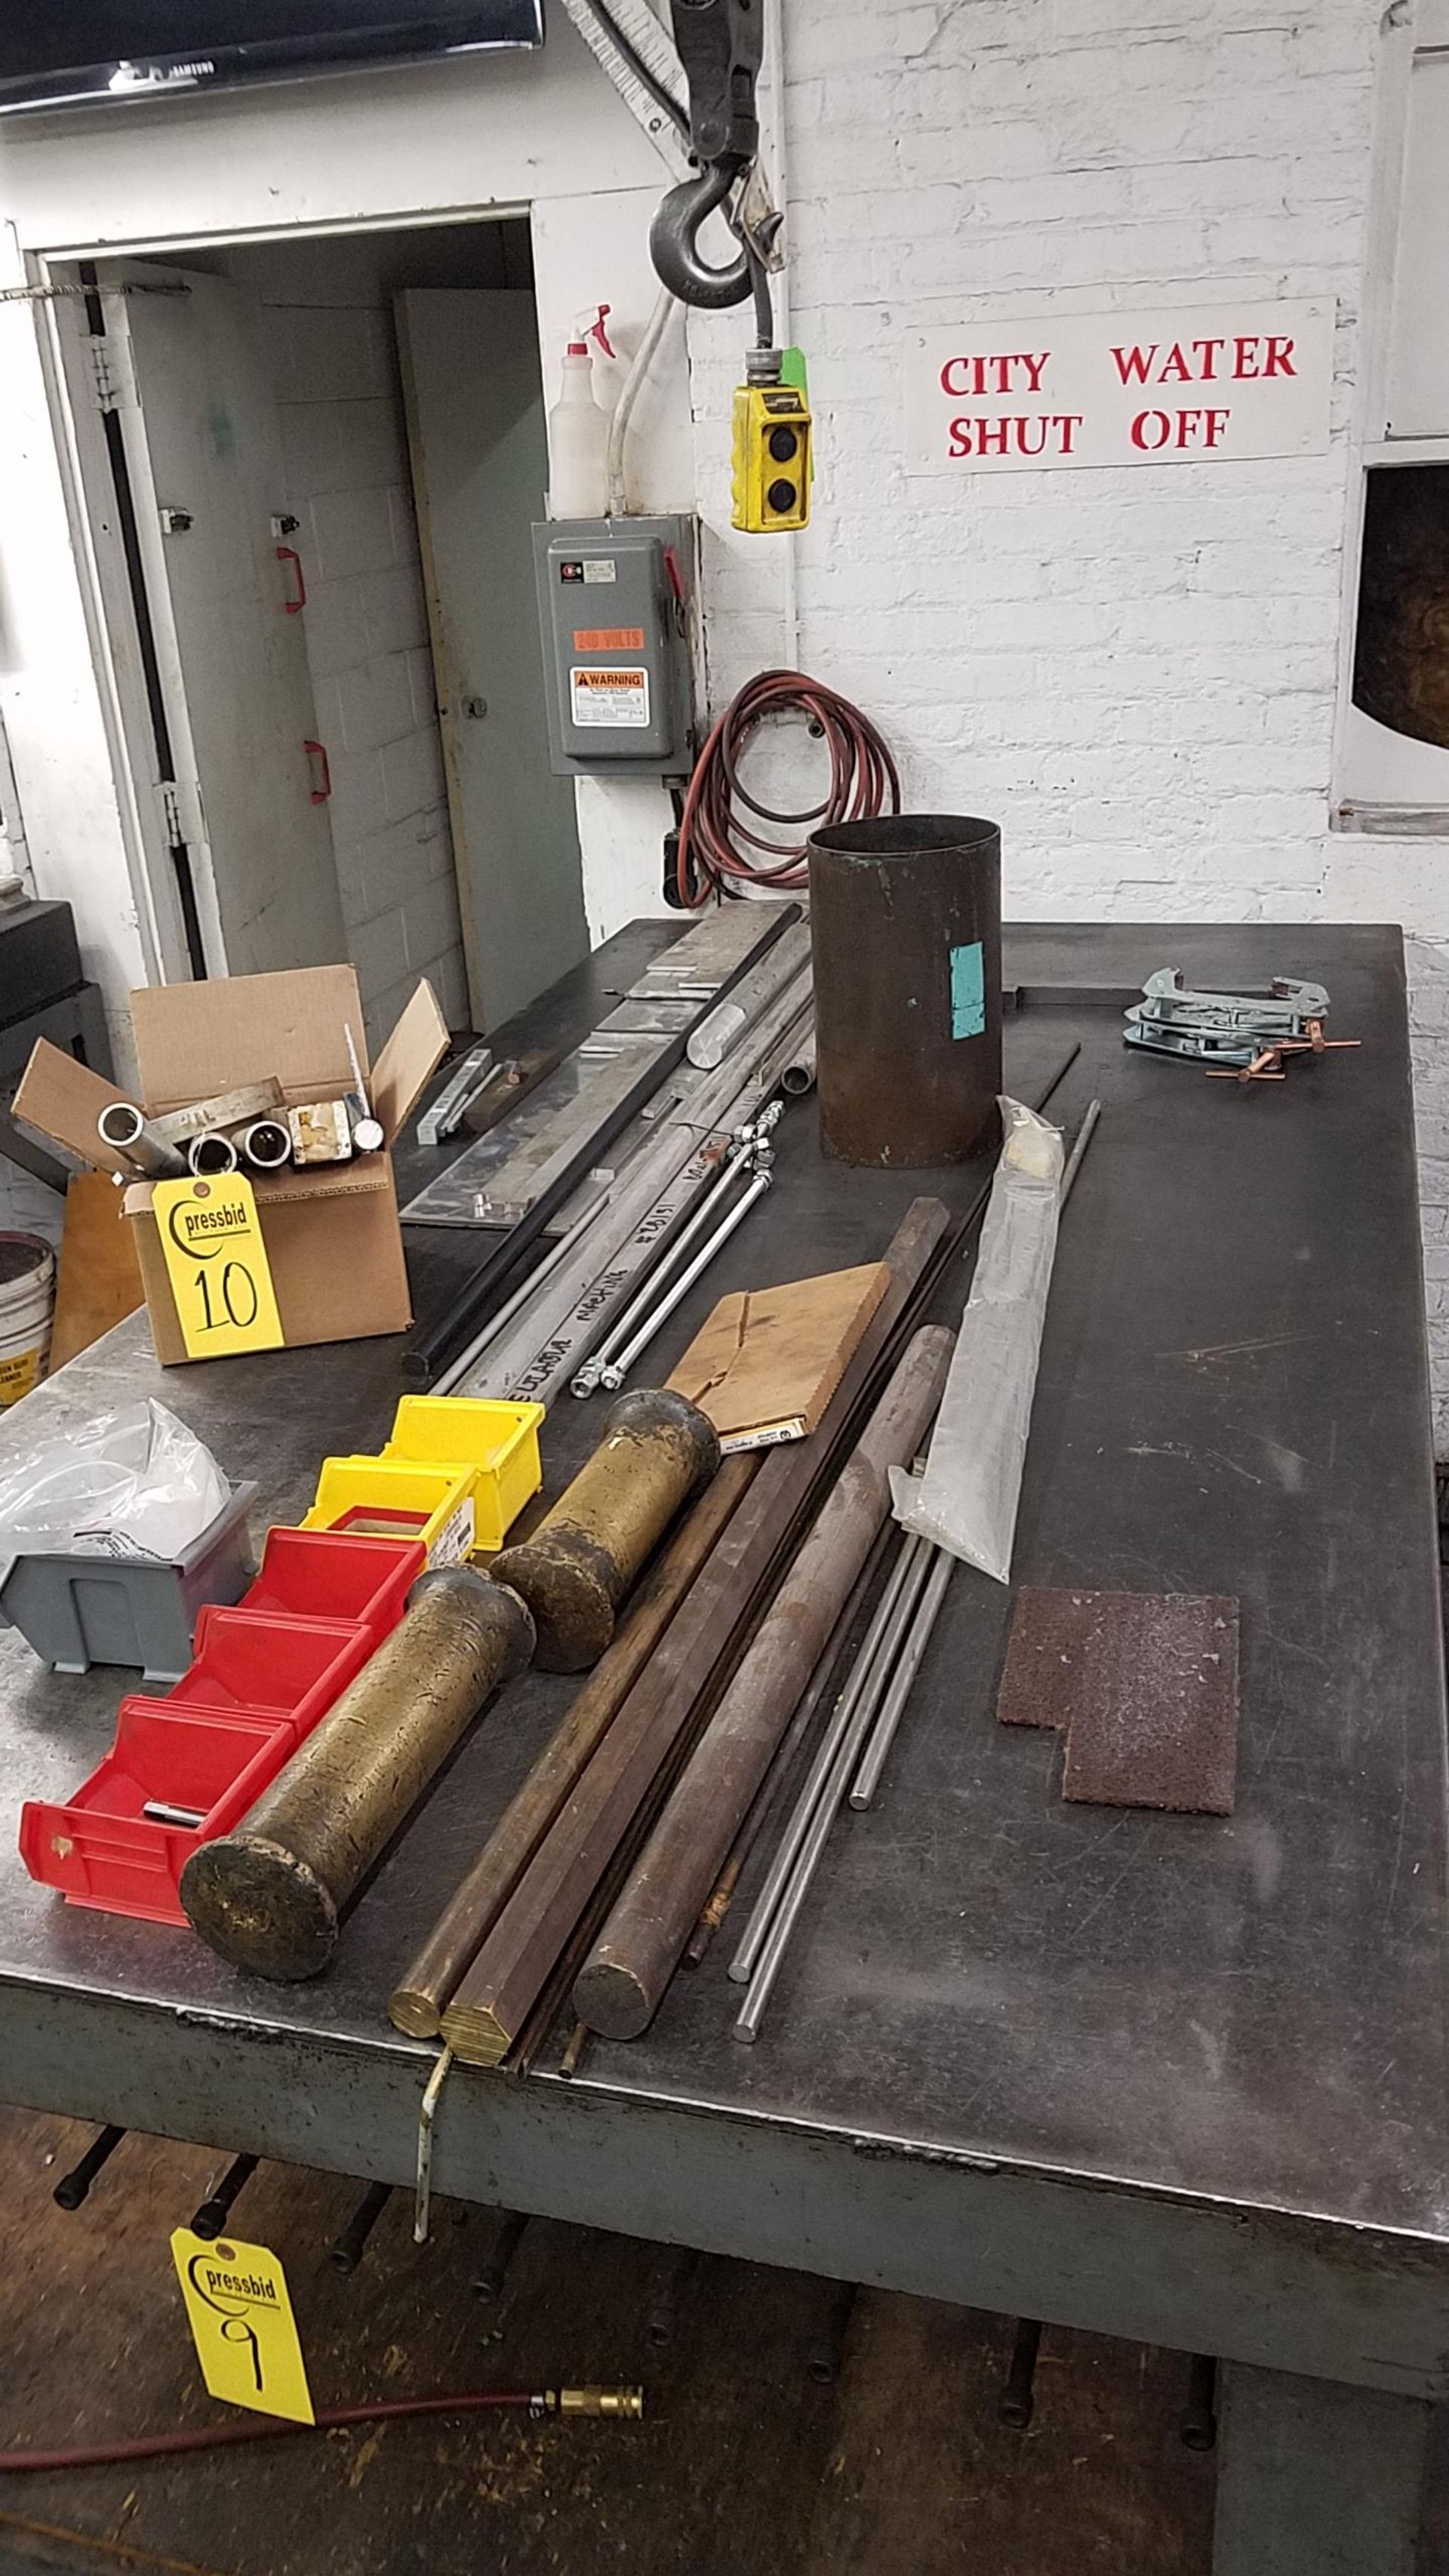 Lot 10 - MISC BRASS AND ALUMINUM (TABLE NOT INCLUDED)